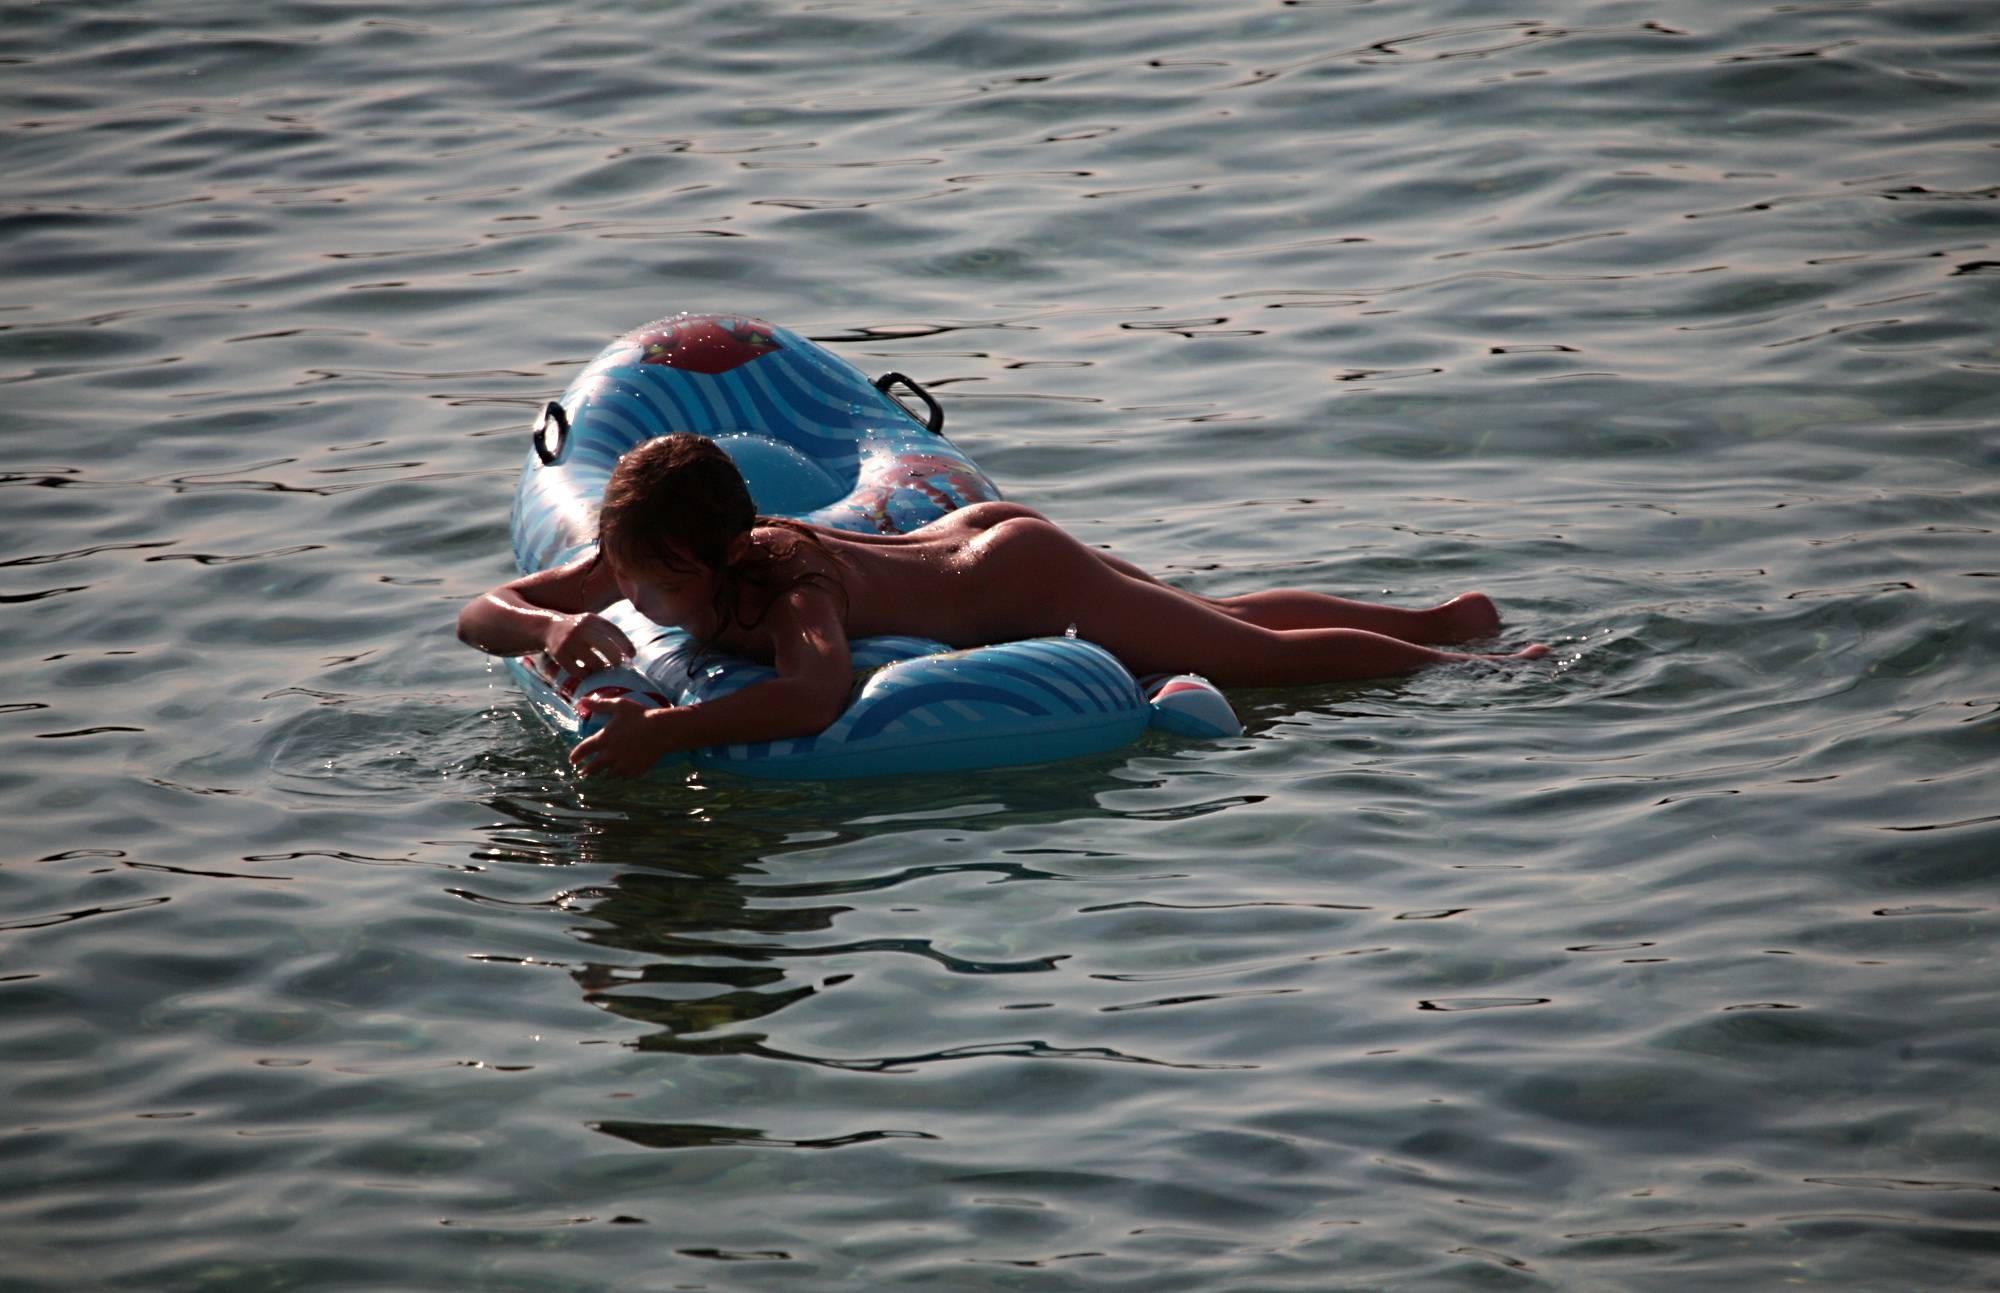 Nudist Pics Father Floats His Daughter - 2